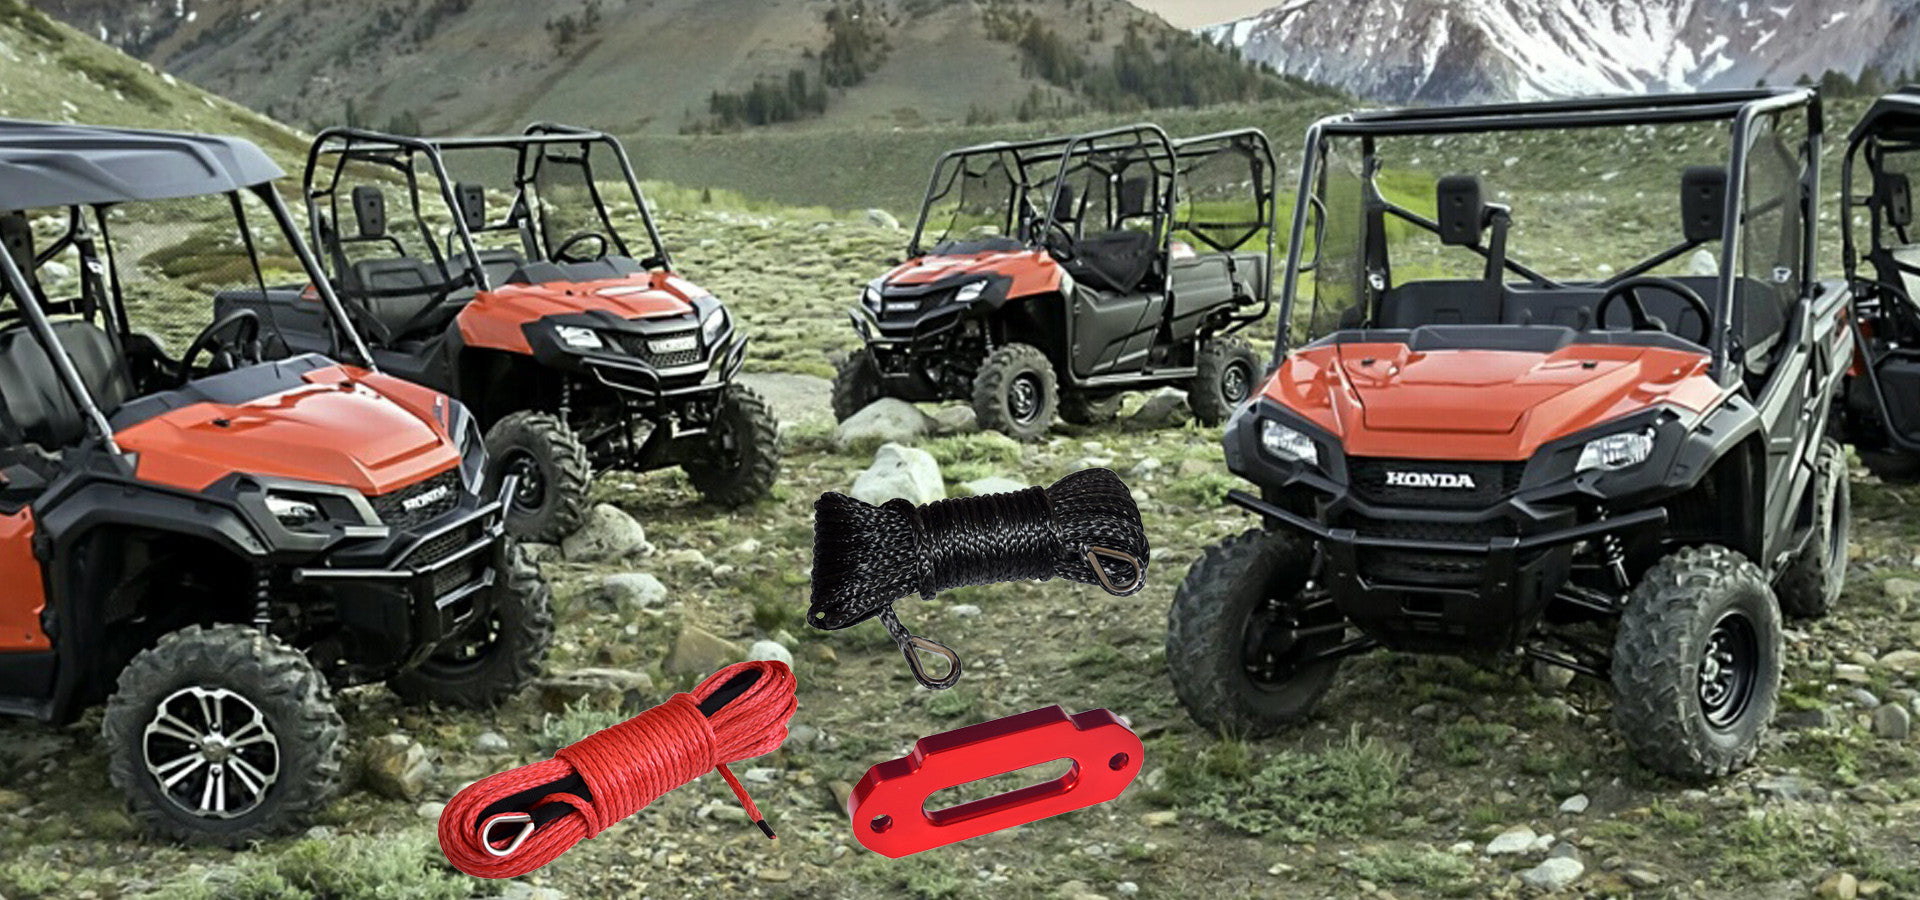 UTV synthetic winch rope